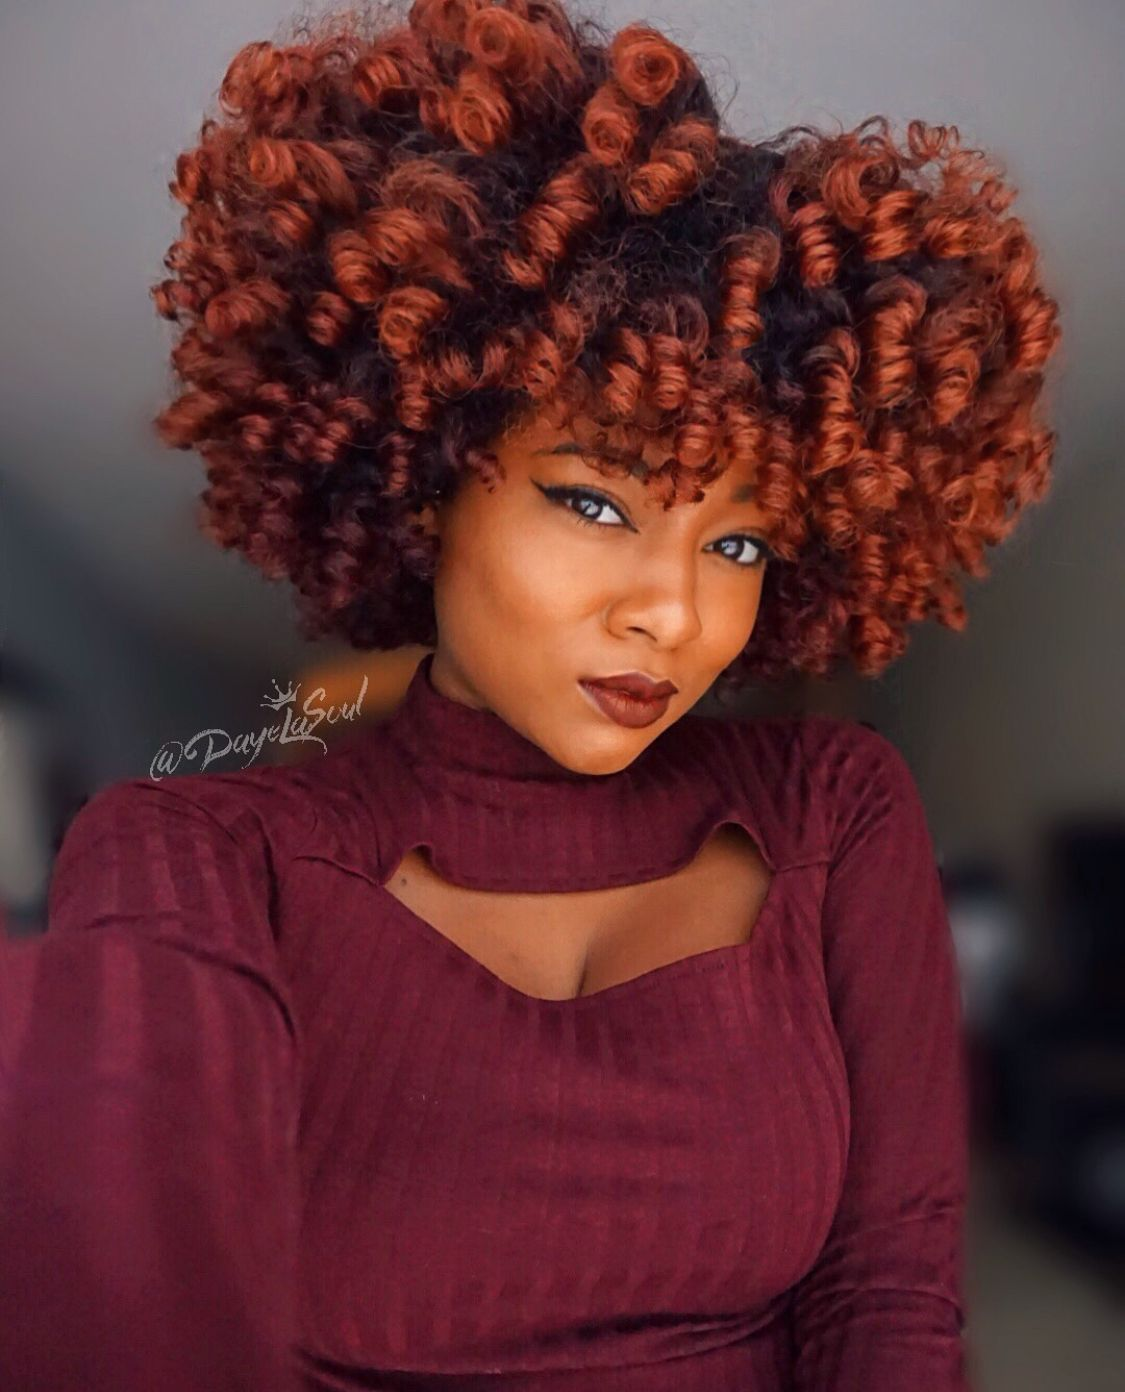 Unique Natural Curly Hair Color Orange Copper Red Burgundy Purple Ombre Bayalage Curly Hair Styles Naturally Natural Hair Styles Natural Hair Color